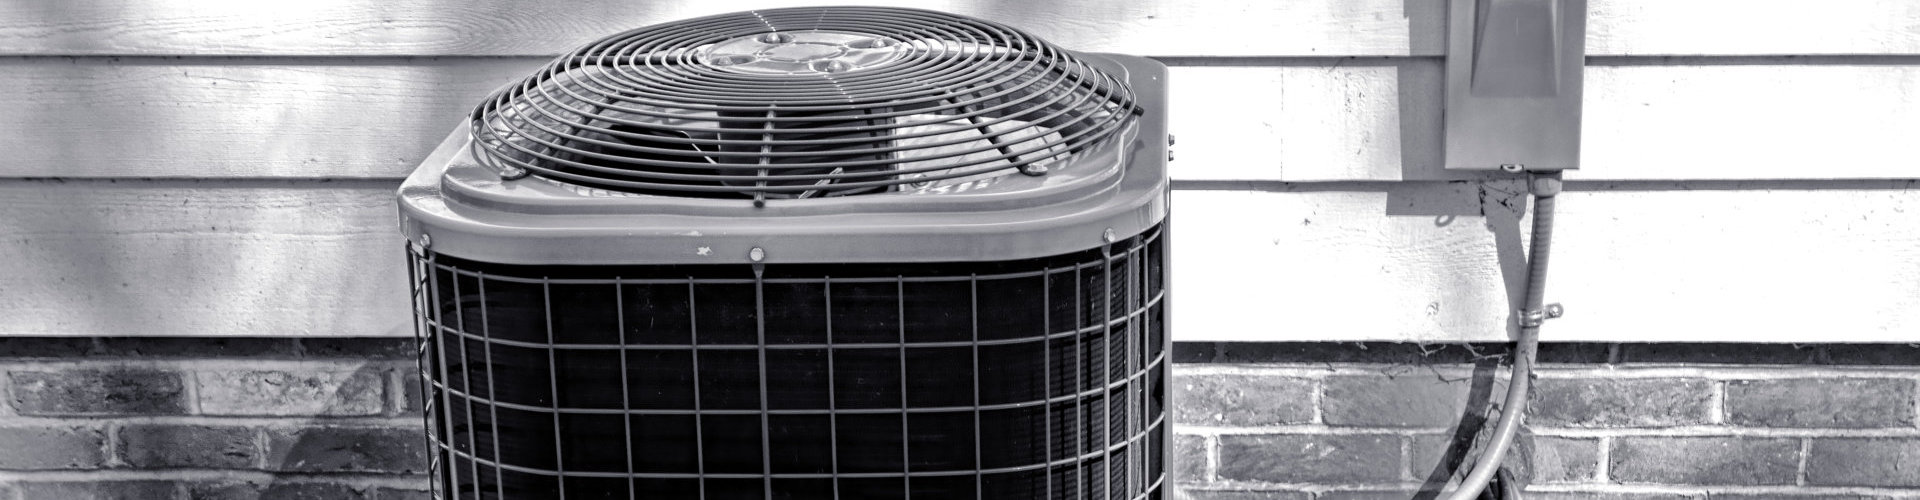 photo of air conditioner cooling fan